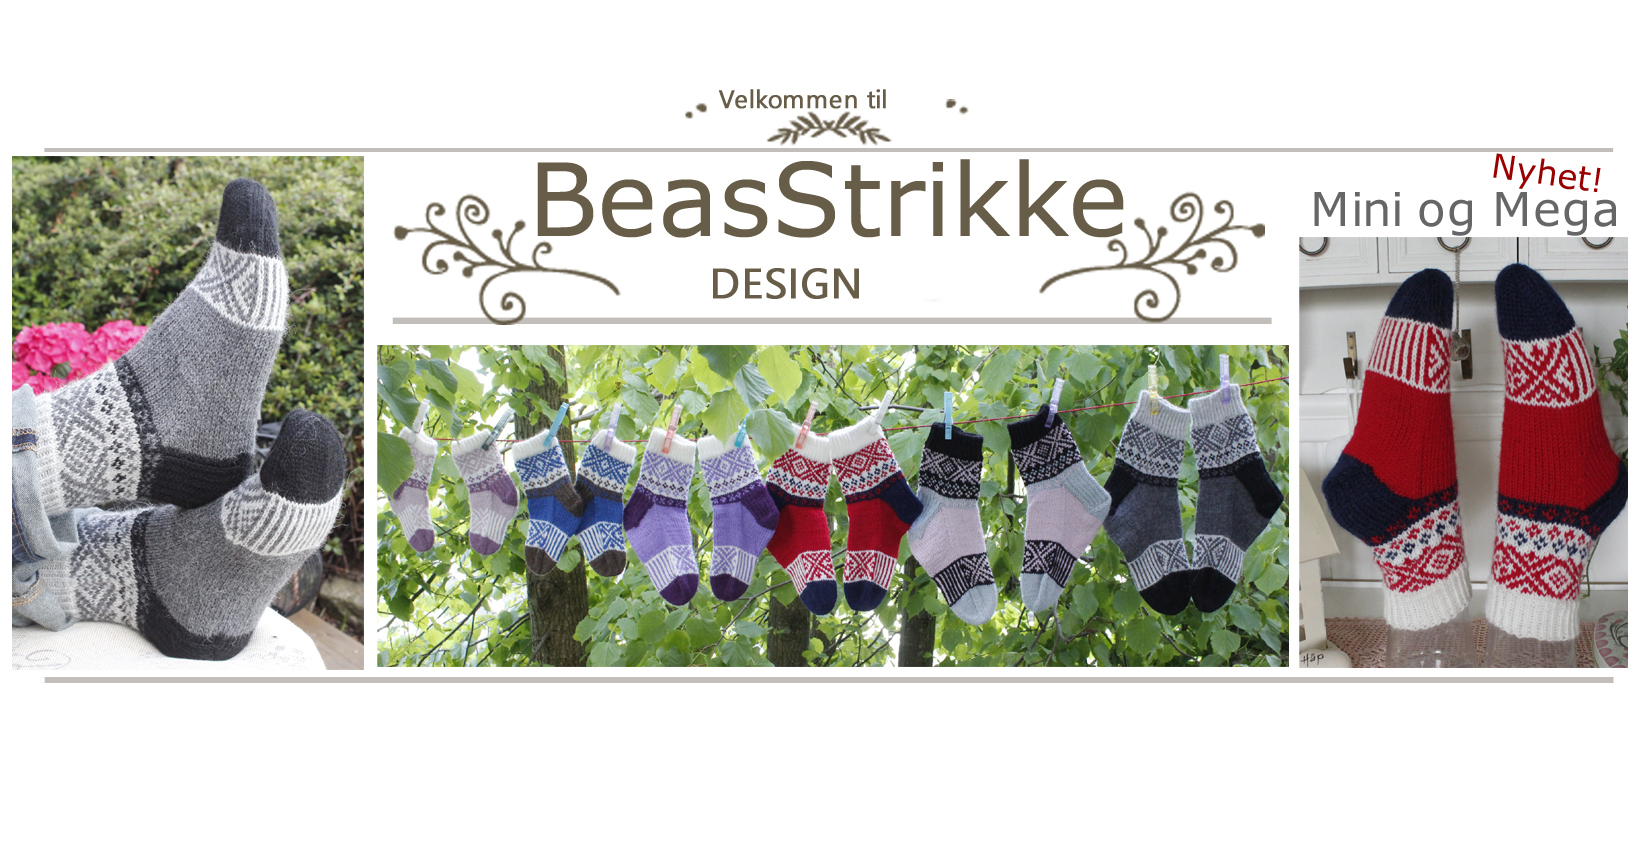 Beas Strikke Design